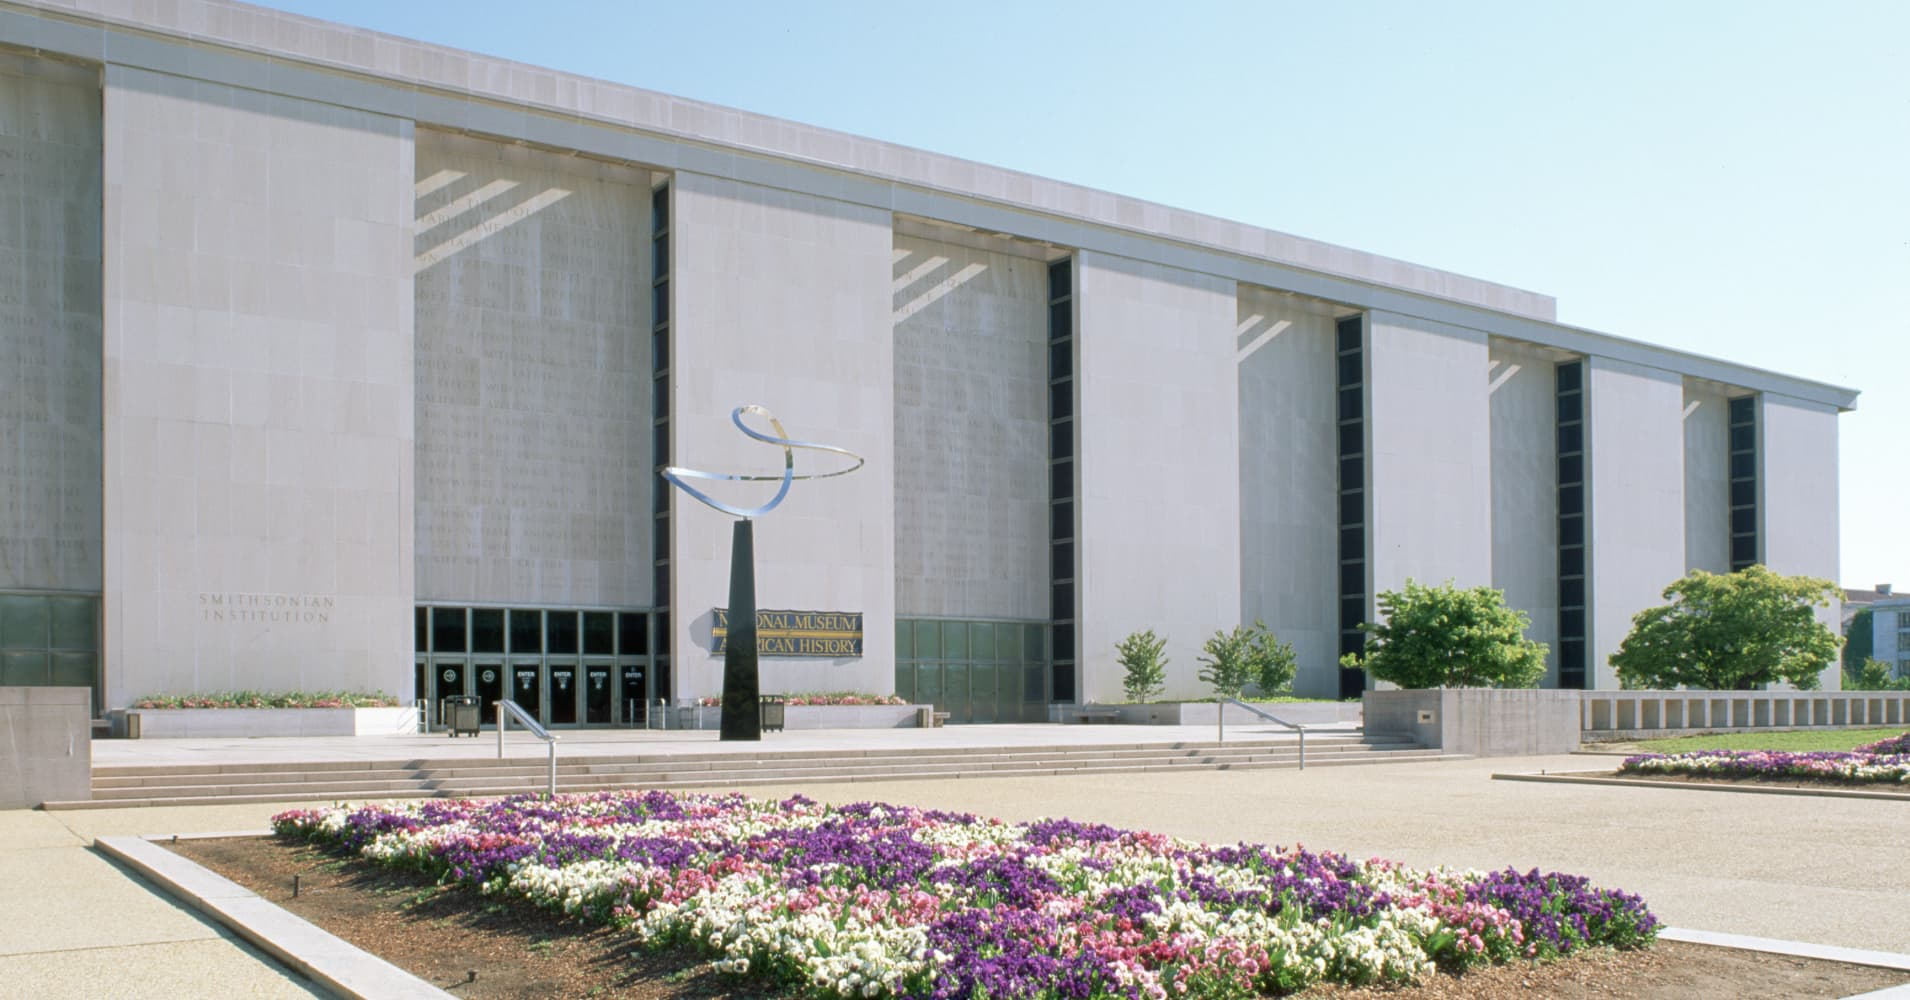 The south facade of the National Museum of American History.